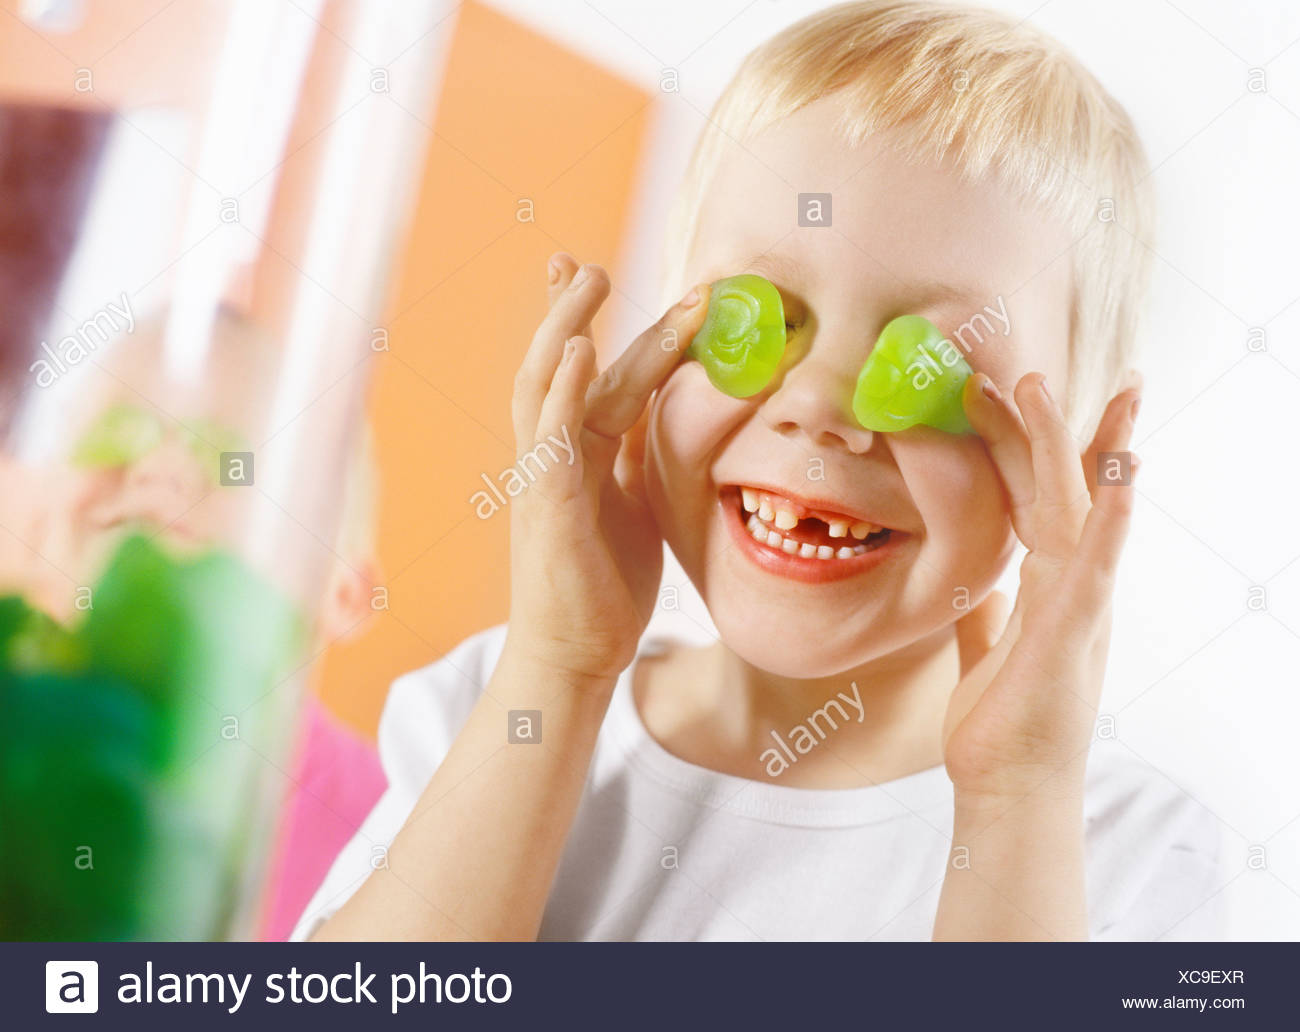 Boy covering his eyes with candies - Stock Image